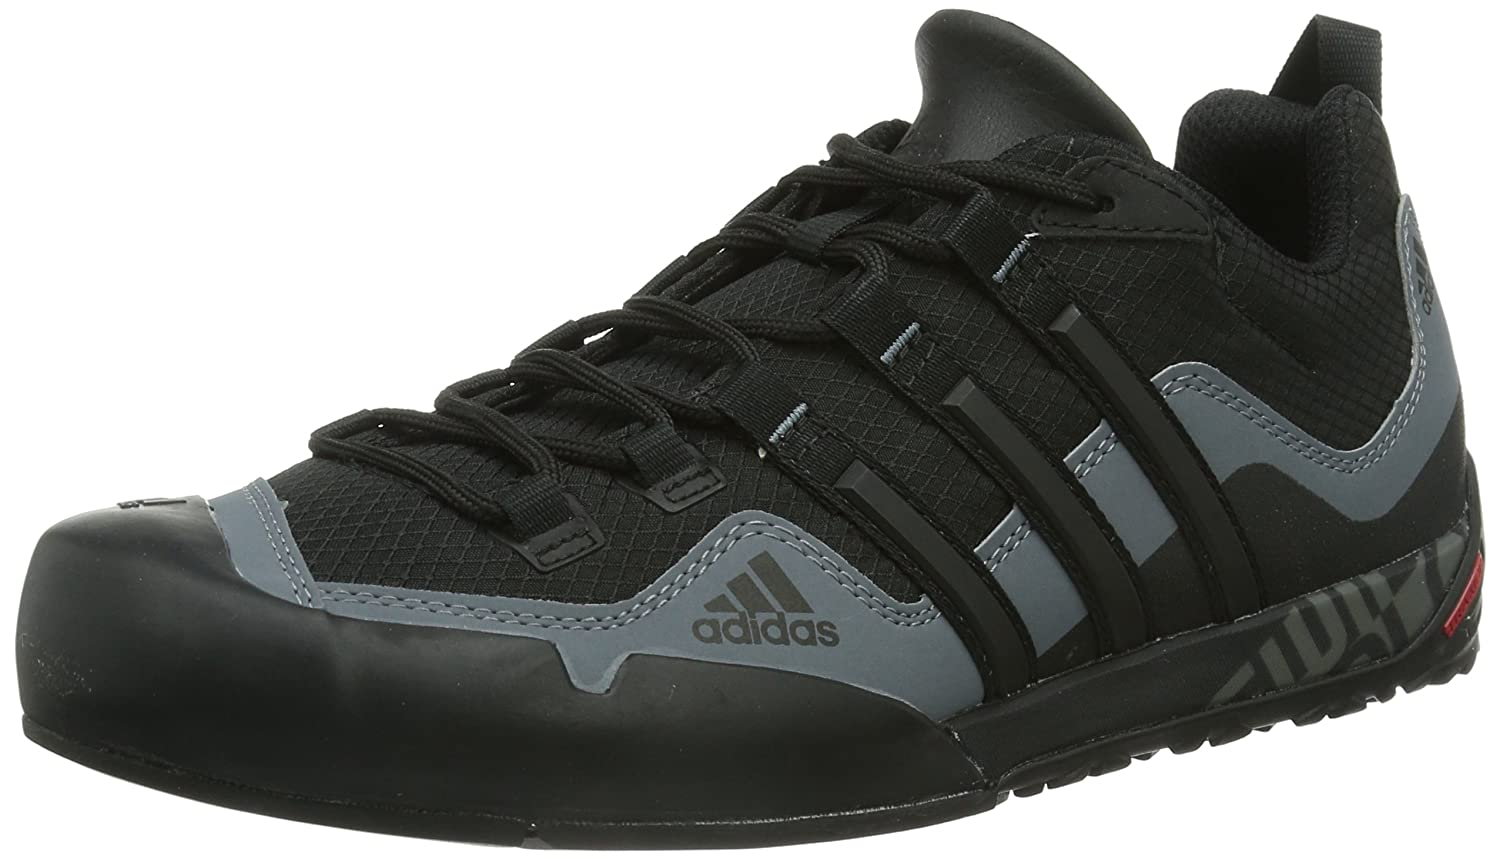 adidas outdoor Mens Terrex Swift Solo B00GS5HHRU 8 D(M) US|Black